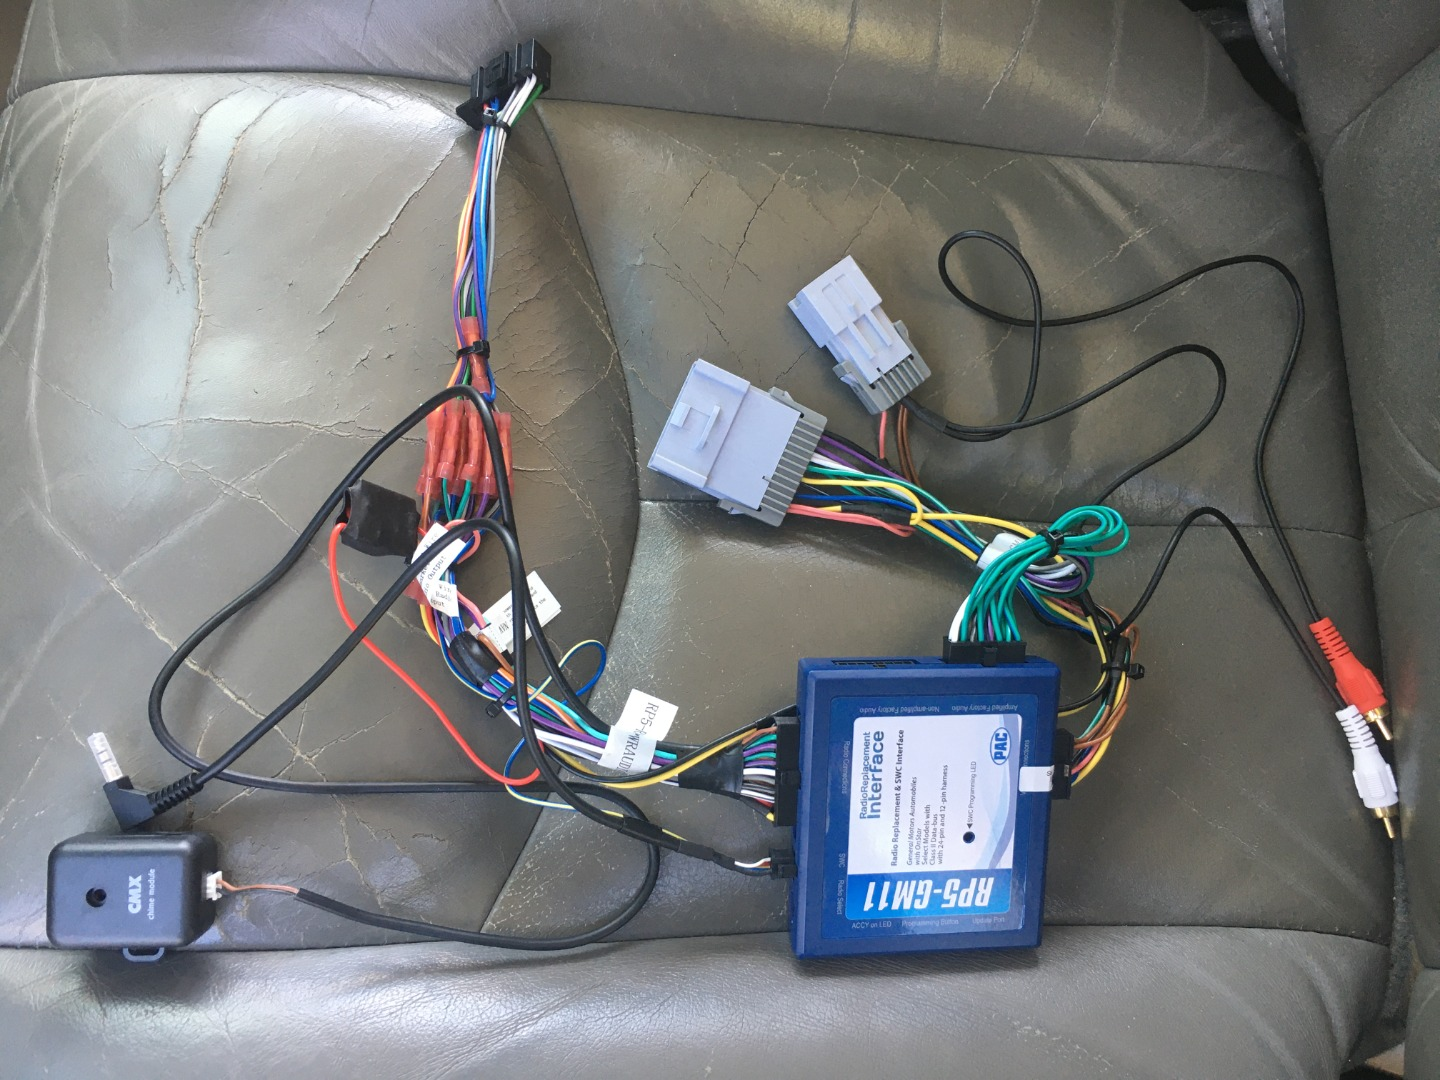 Customer Reviews Pac Rp5 Gm11 Wiring Interface Connect A New Car Stereo And Retain Onstar Factory Amp And Steering Wheel Audio Controls In Select 2000 Up Gm Vehicles At Crutchfield